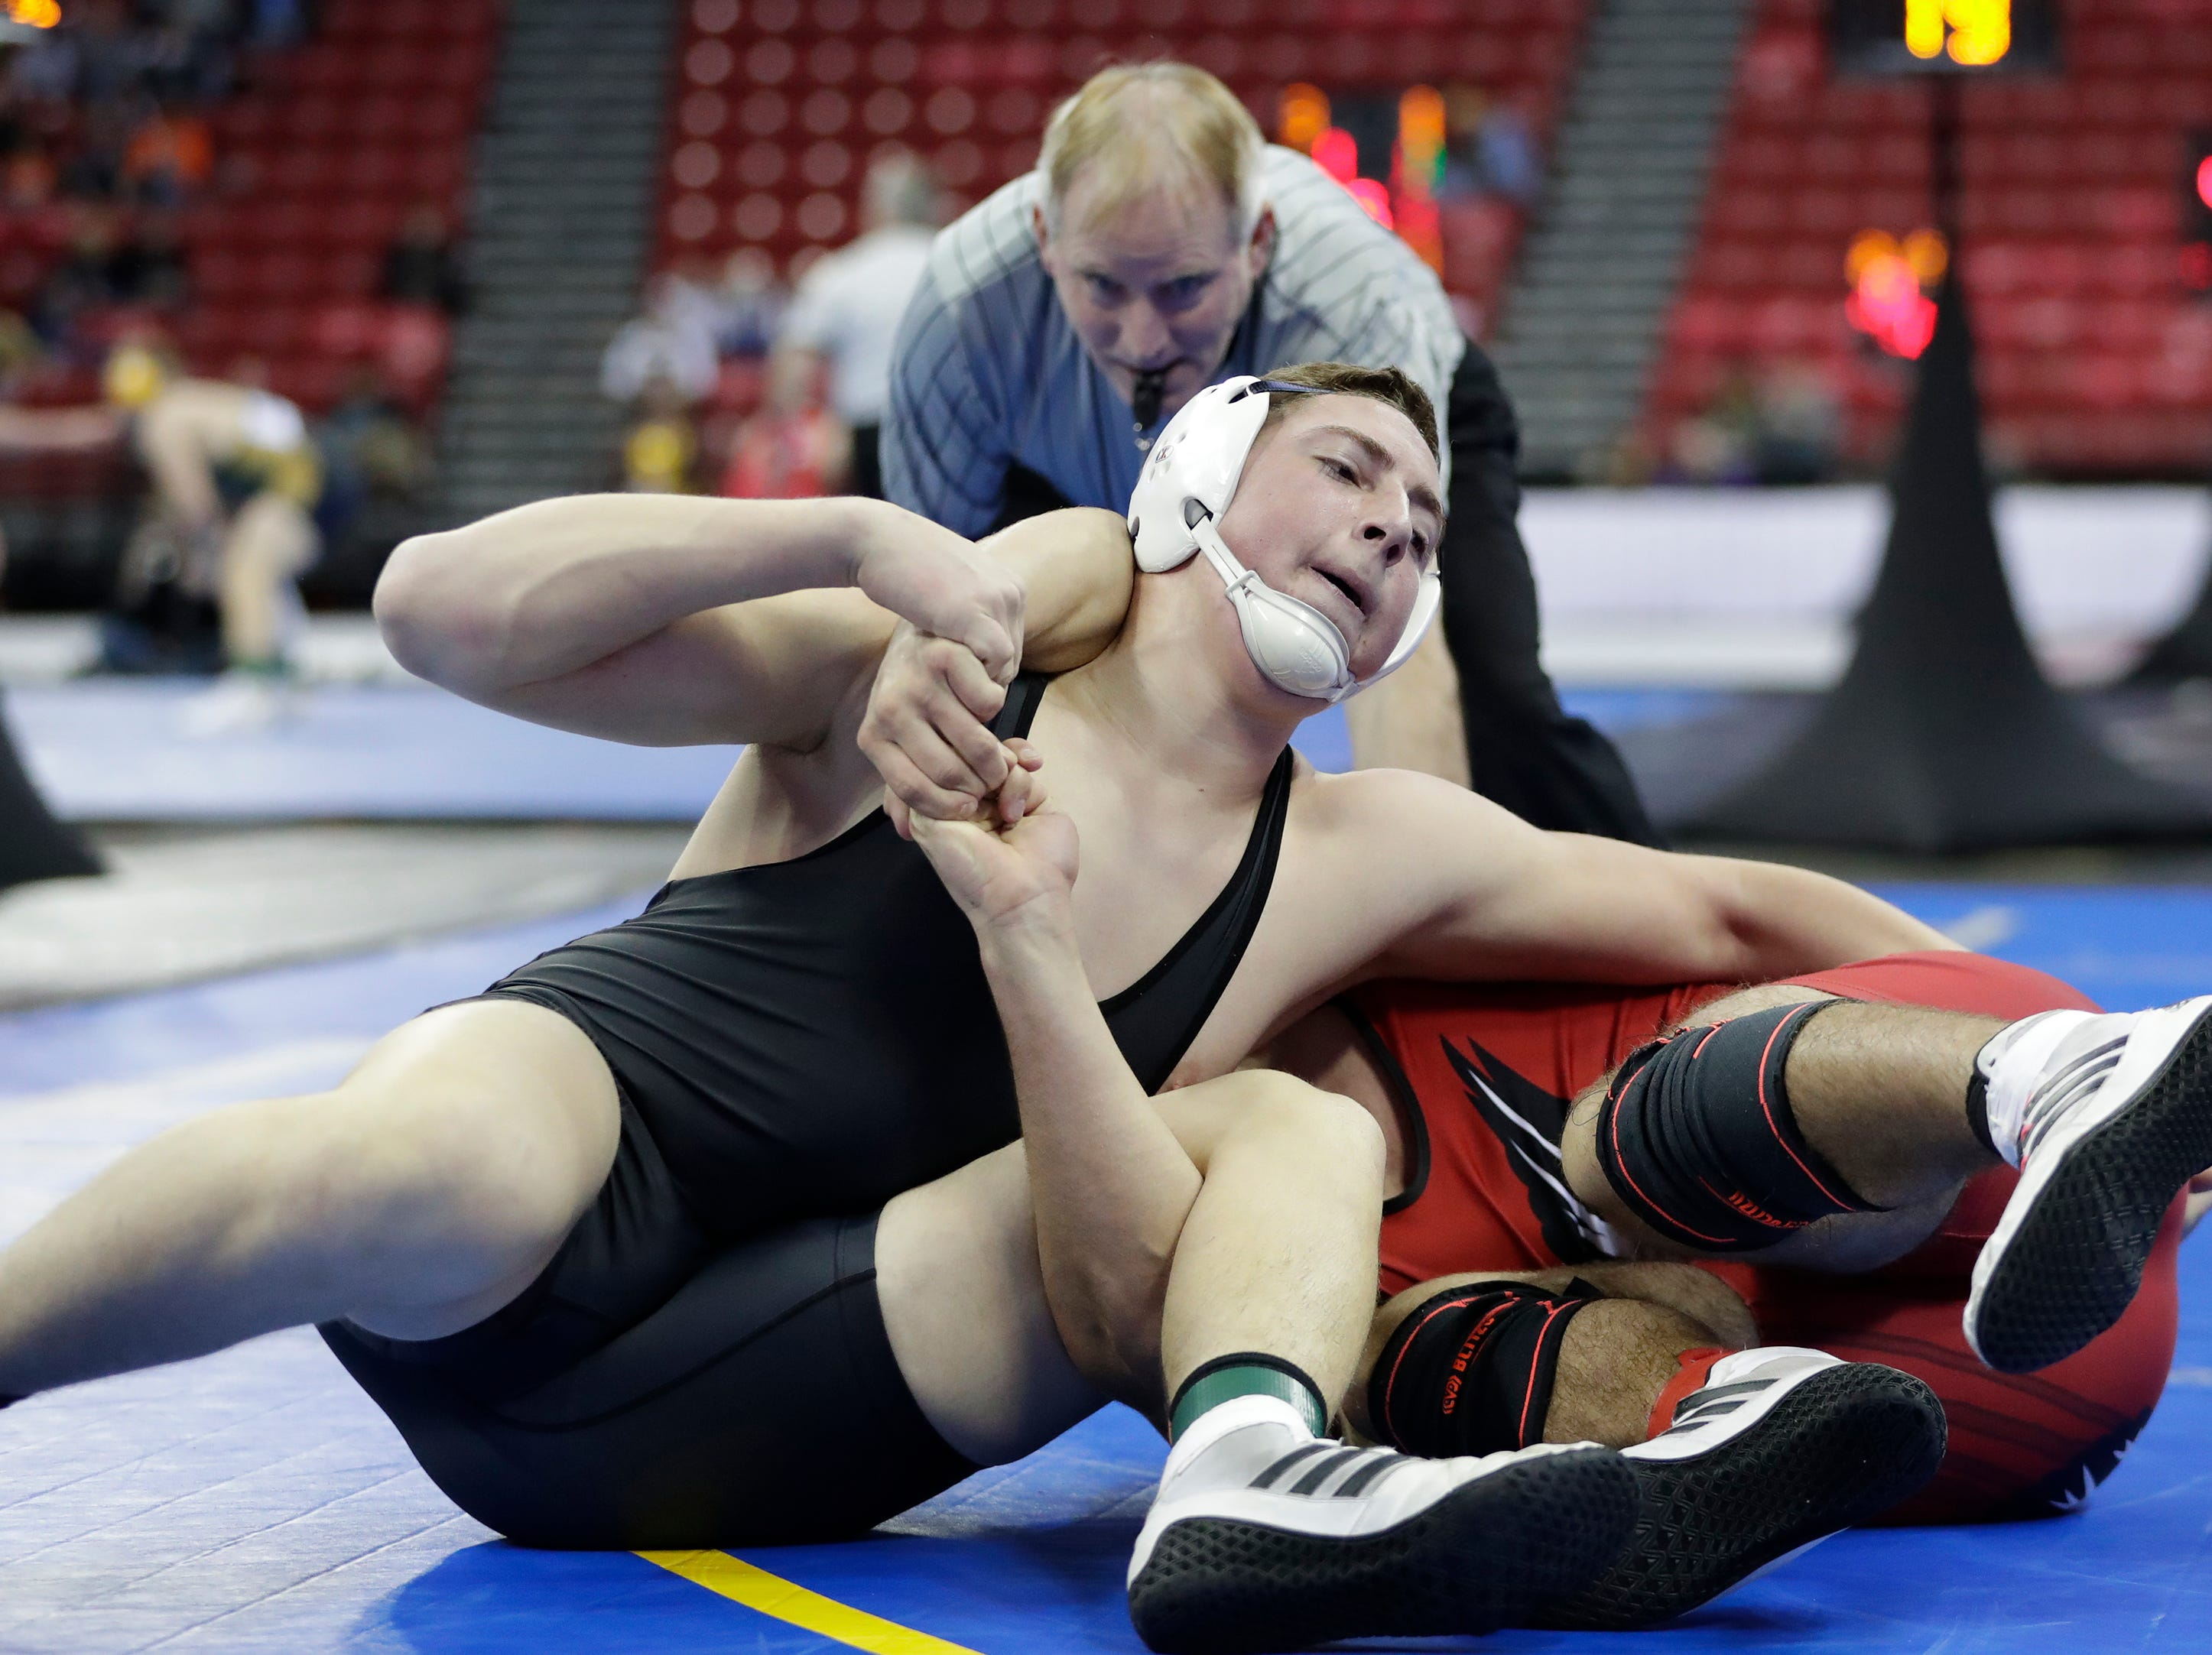 Stratford's Trevor Steiner wrestles Flambeau's Bryce Best in a Division 3 195-pound weight class preliminary match during the WIAA state individual wrestling tournament at the Kohl Center Thursday, February 21, 2019, in Madison, Wis.